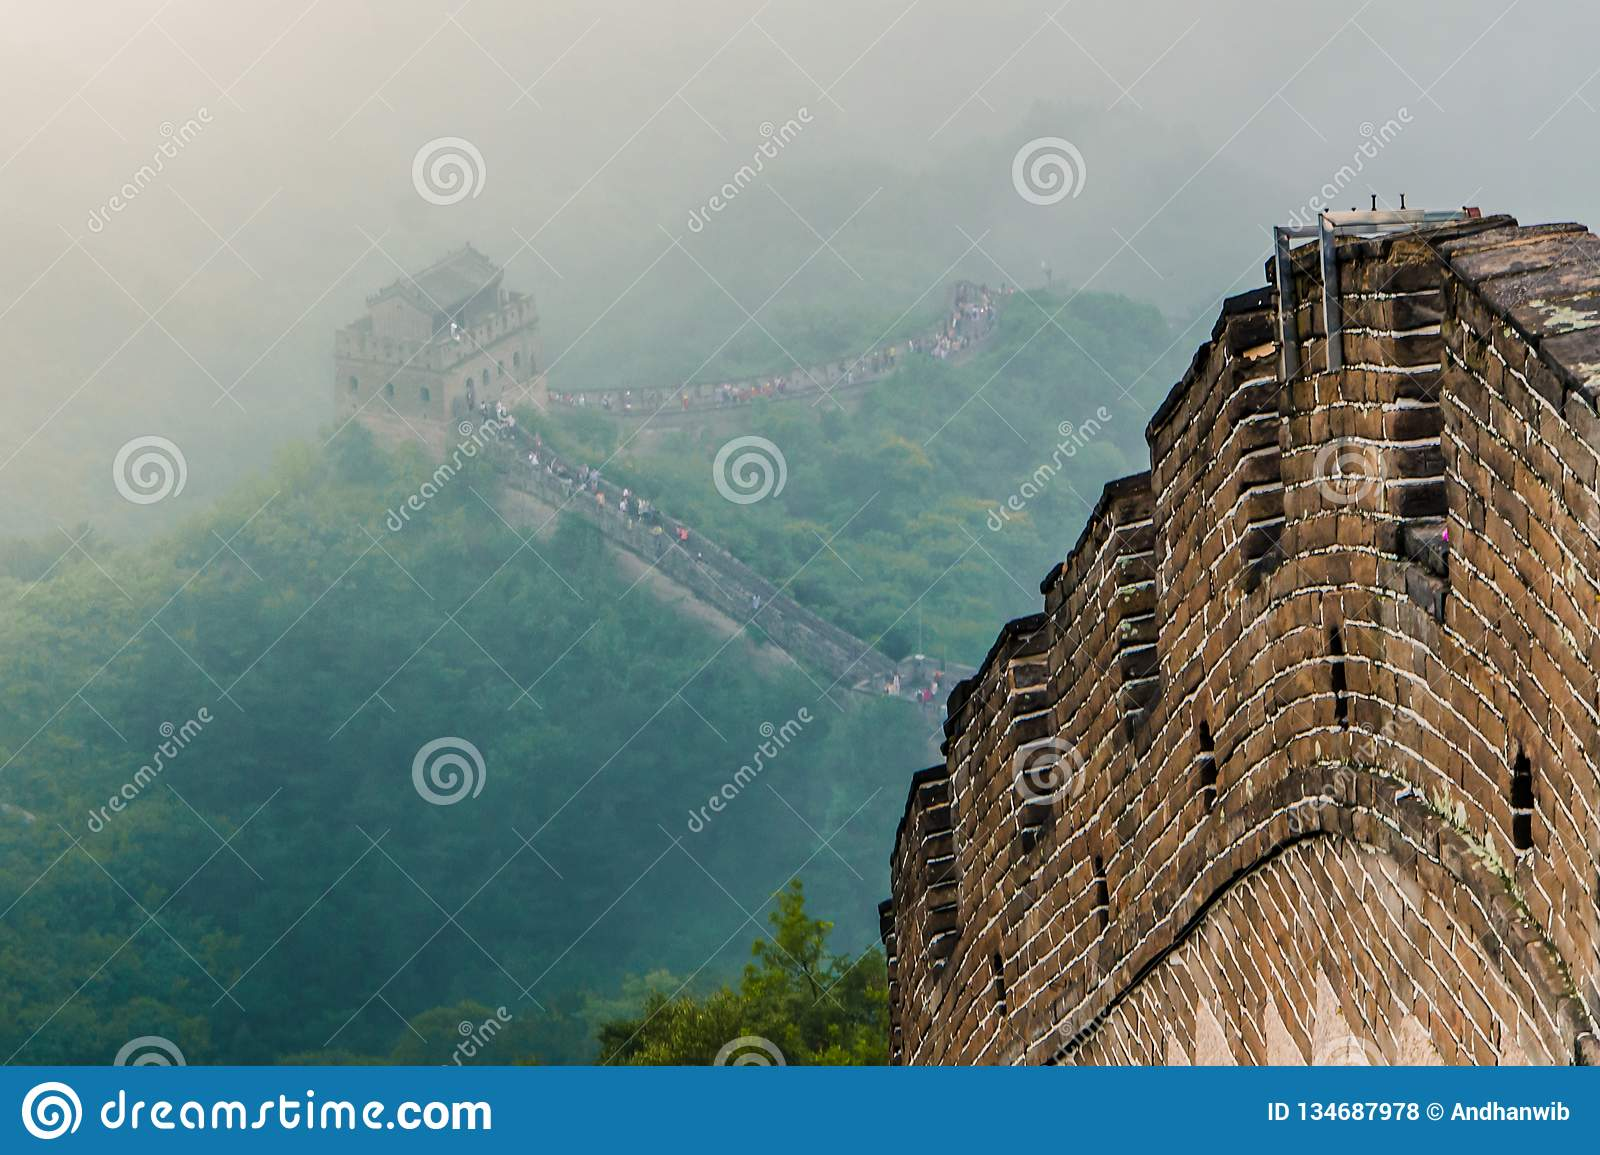 Great Wall of China through the Mist